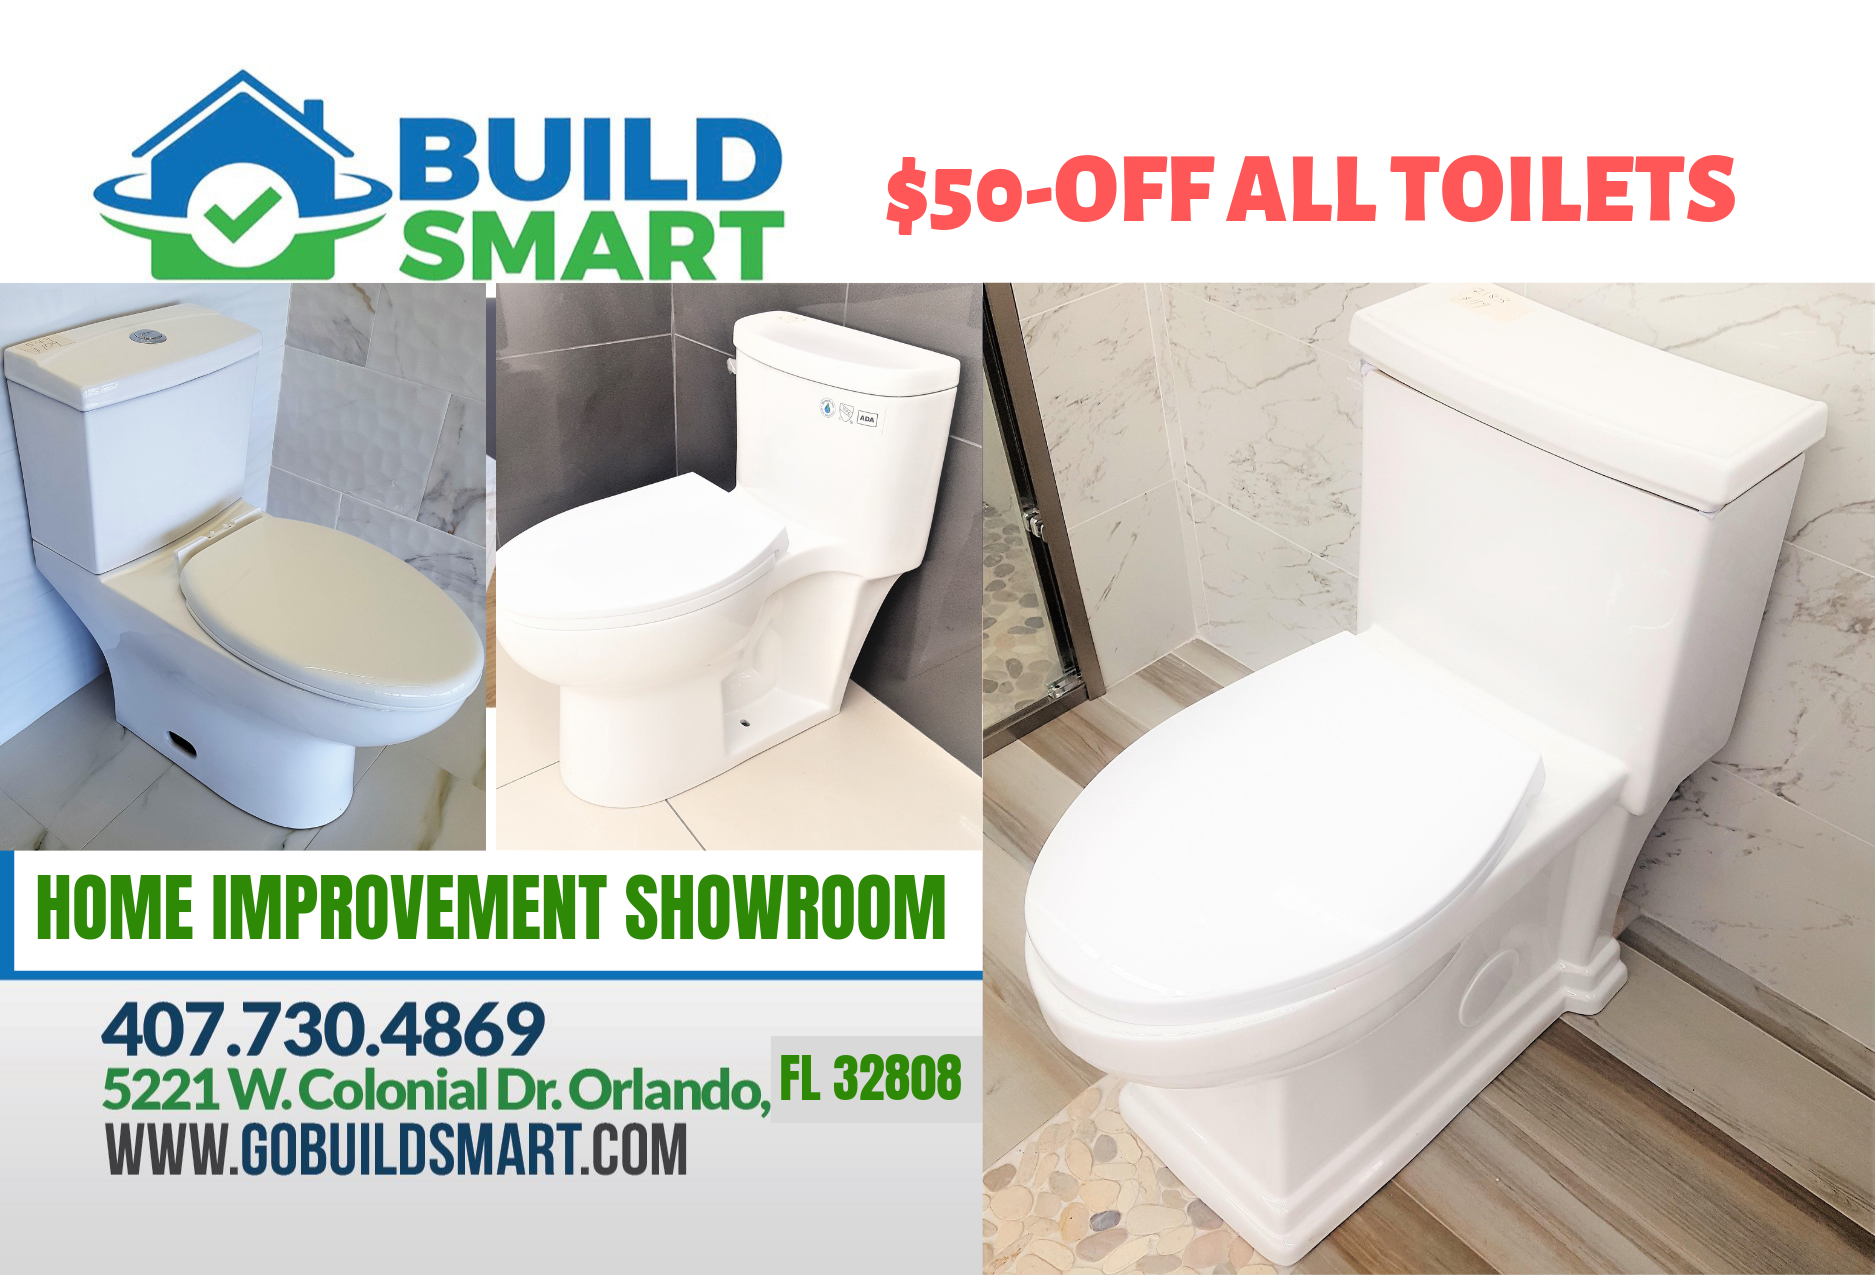 LABOR DAY WEEKEND SALE – $50OFF TOILETS